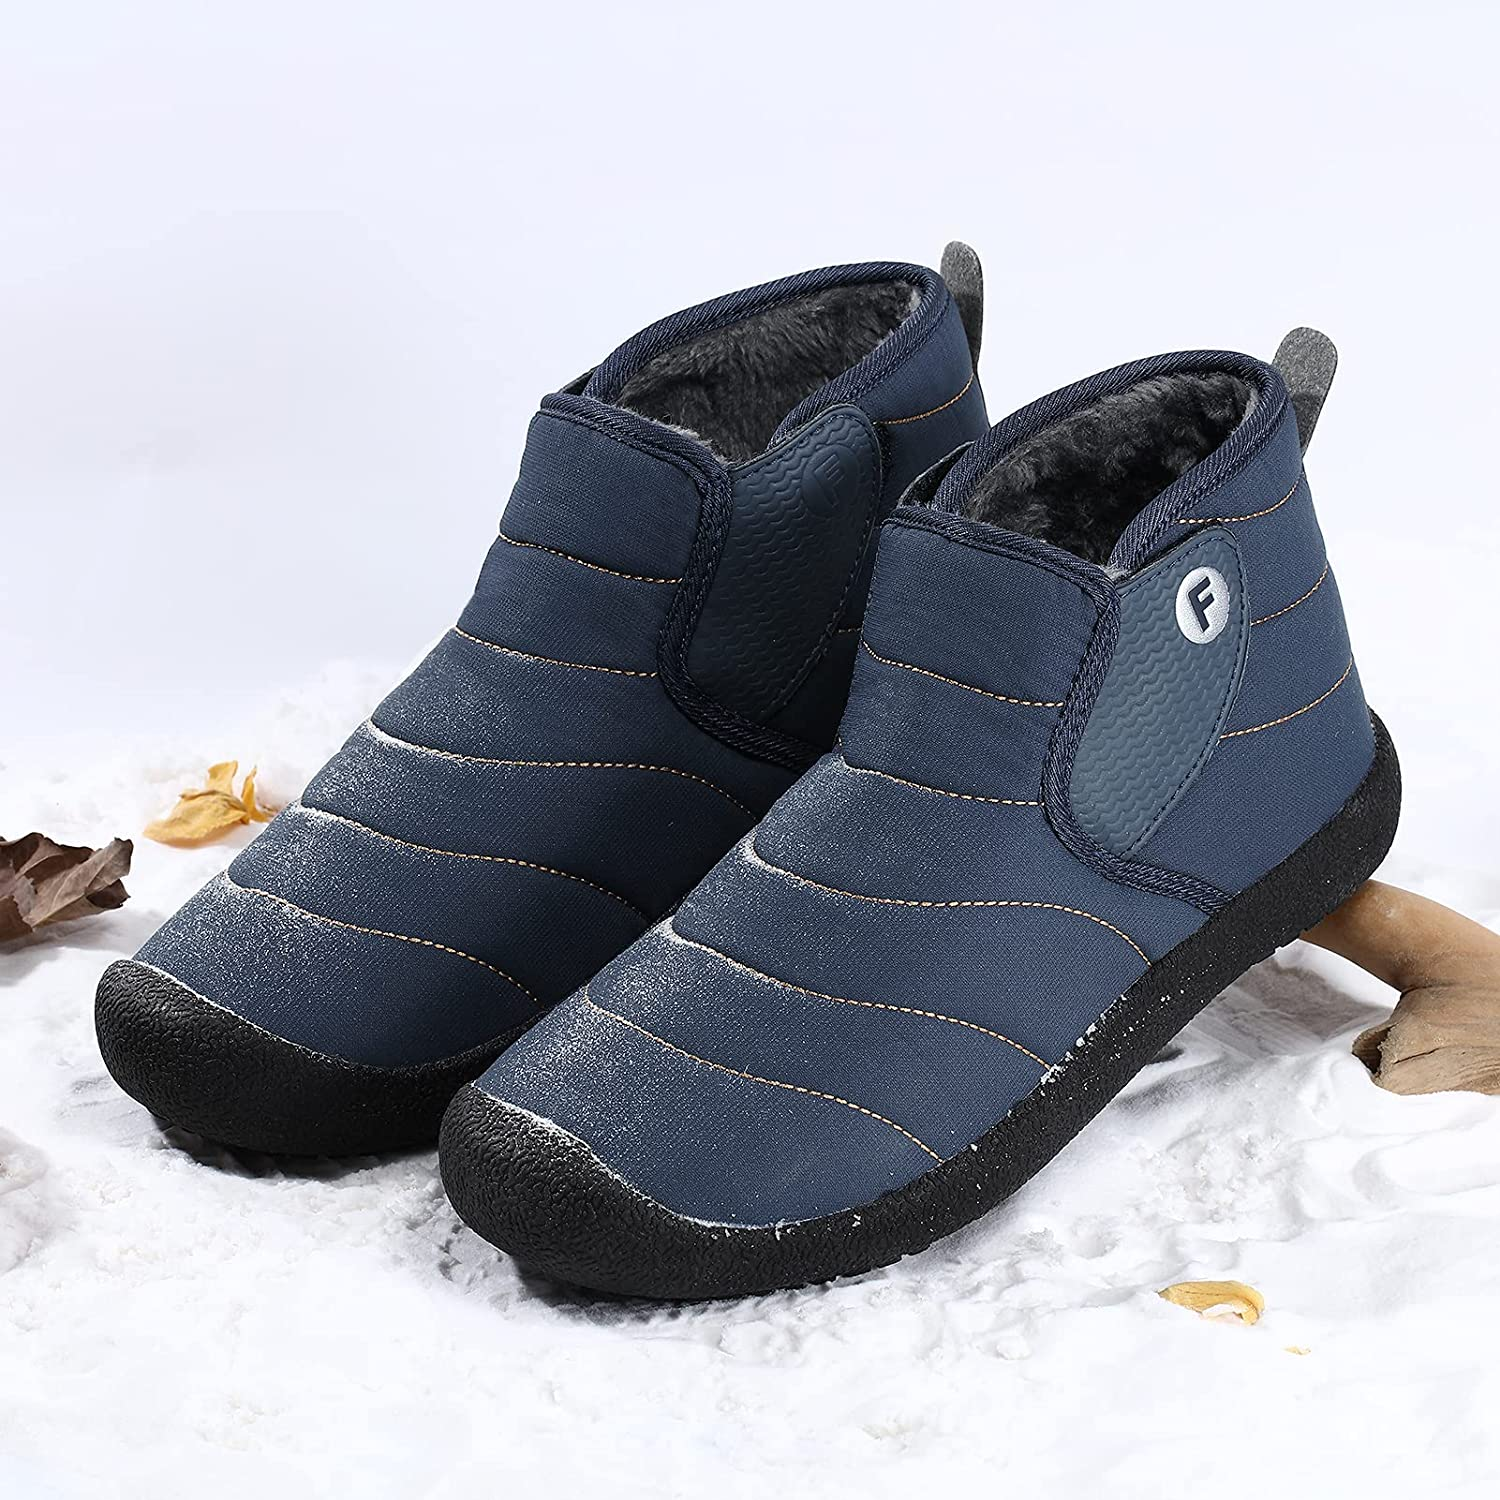 Womens Winter Snow Boots Fur Lined Warm Ankle Boots Slip On Waterproof Outdoor Booties Comfortable Shoes for Women Dark Blue US Size5